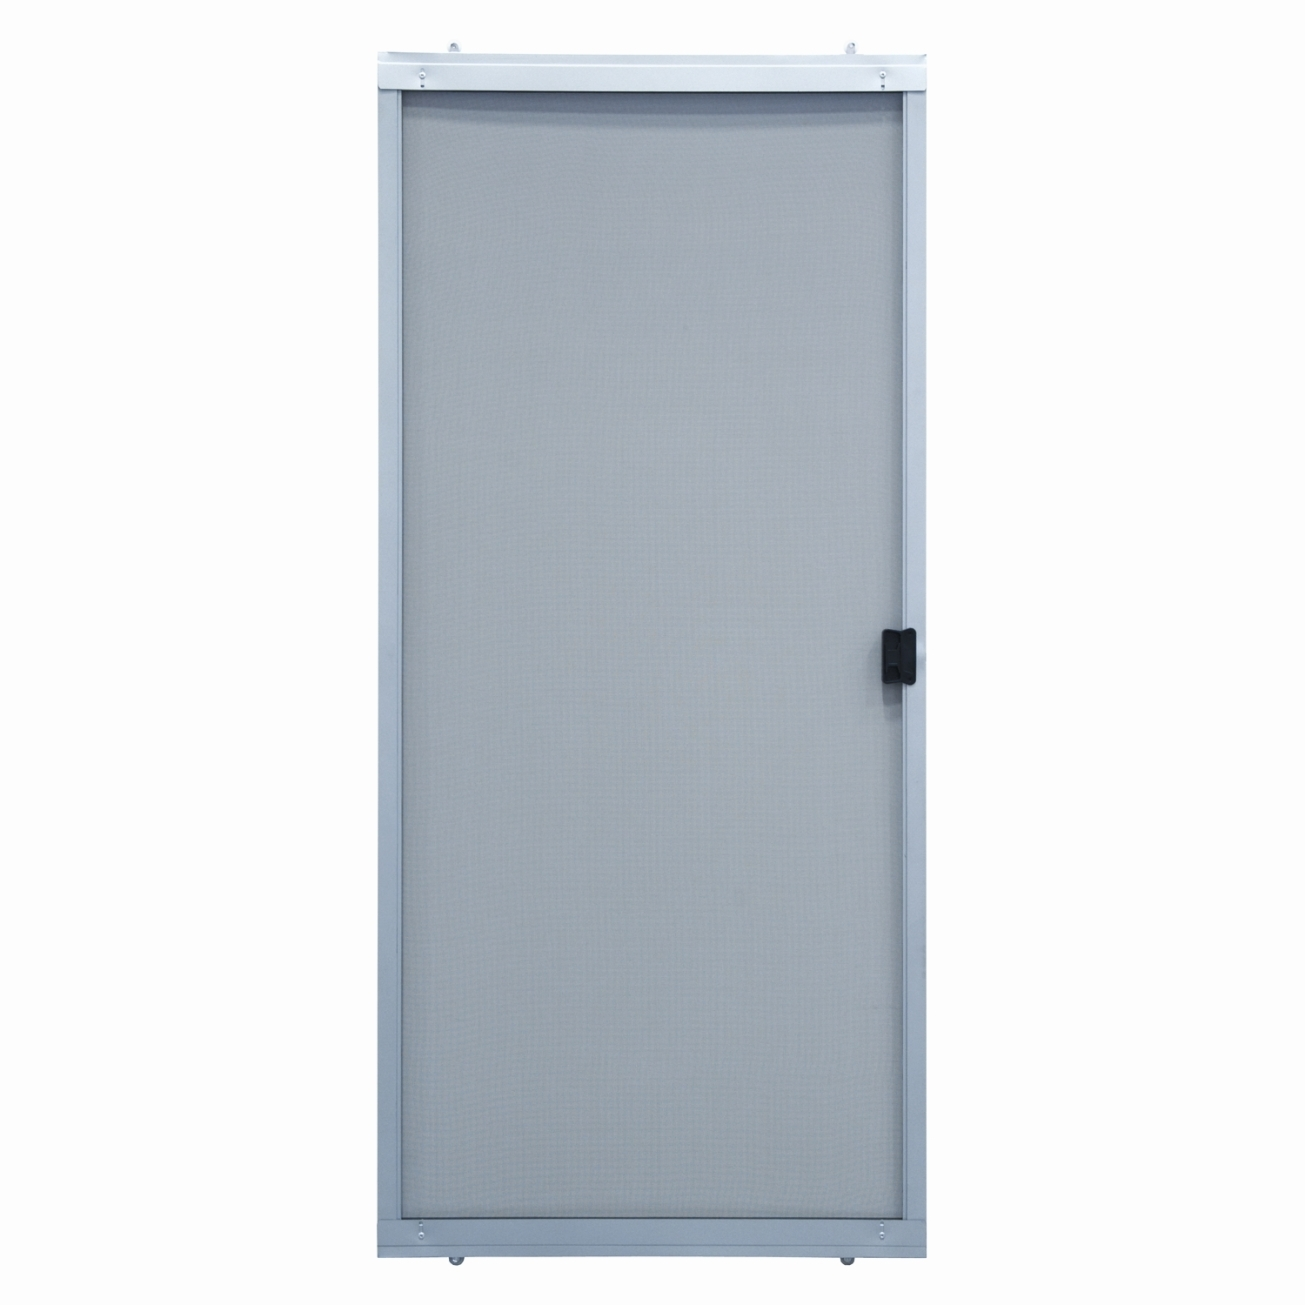 Sliding Screen Door Guard 30 Widescreen doors door hardware security storm doors at ace hardware